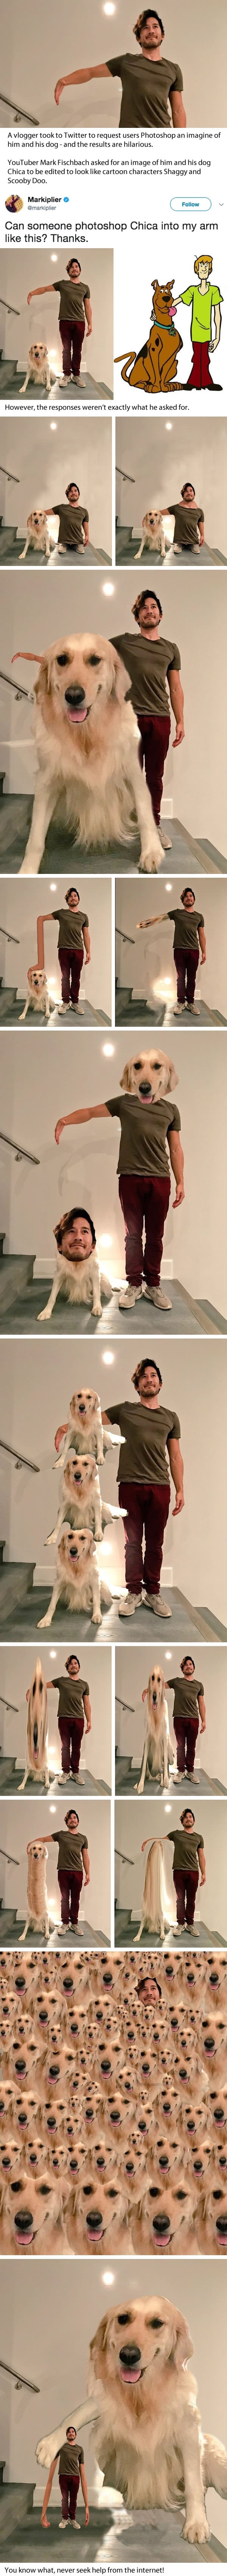 Mark Fischbach Sparks photoshop battle